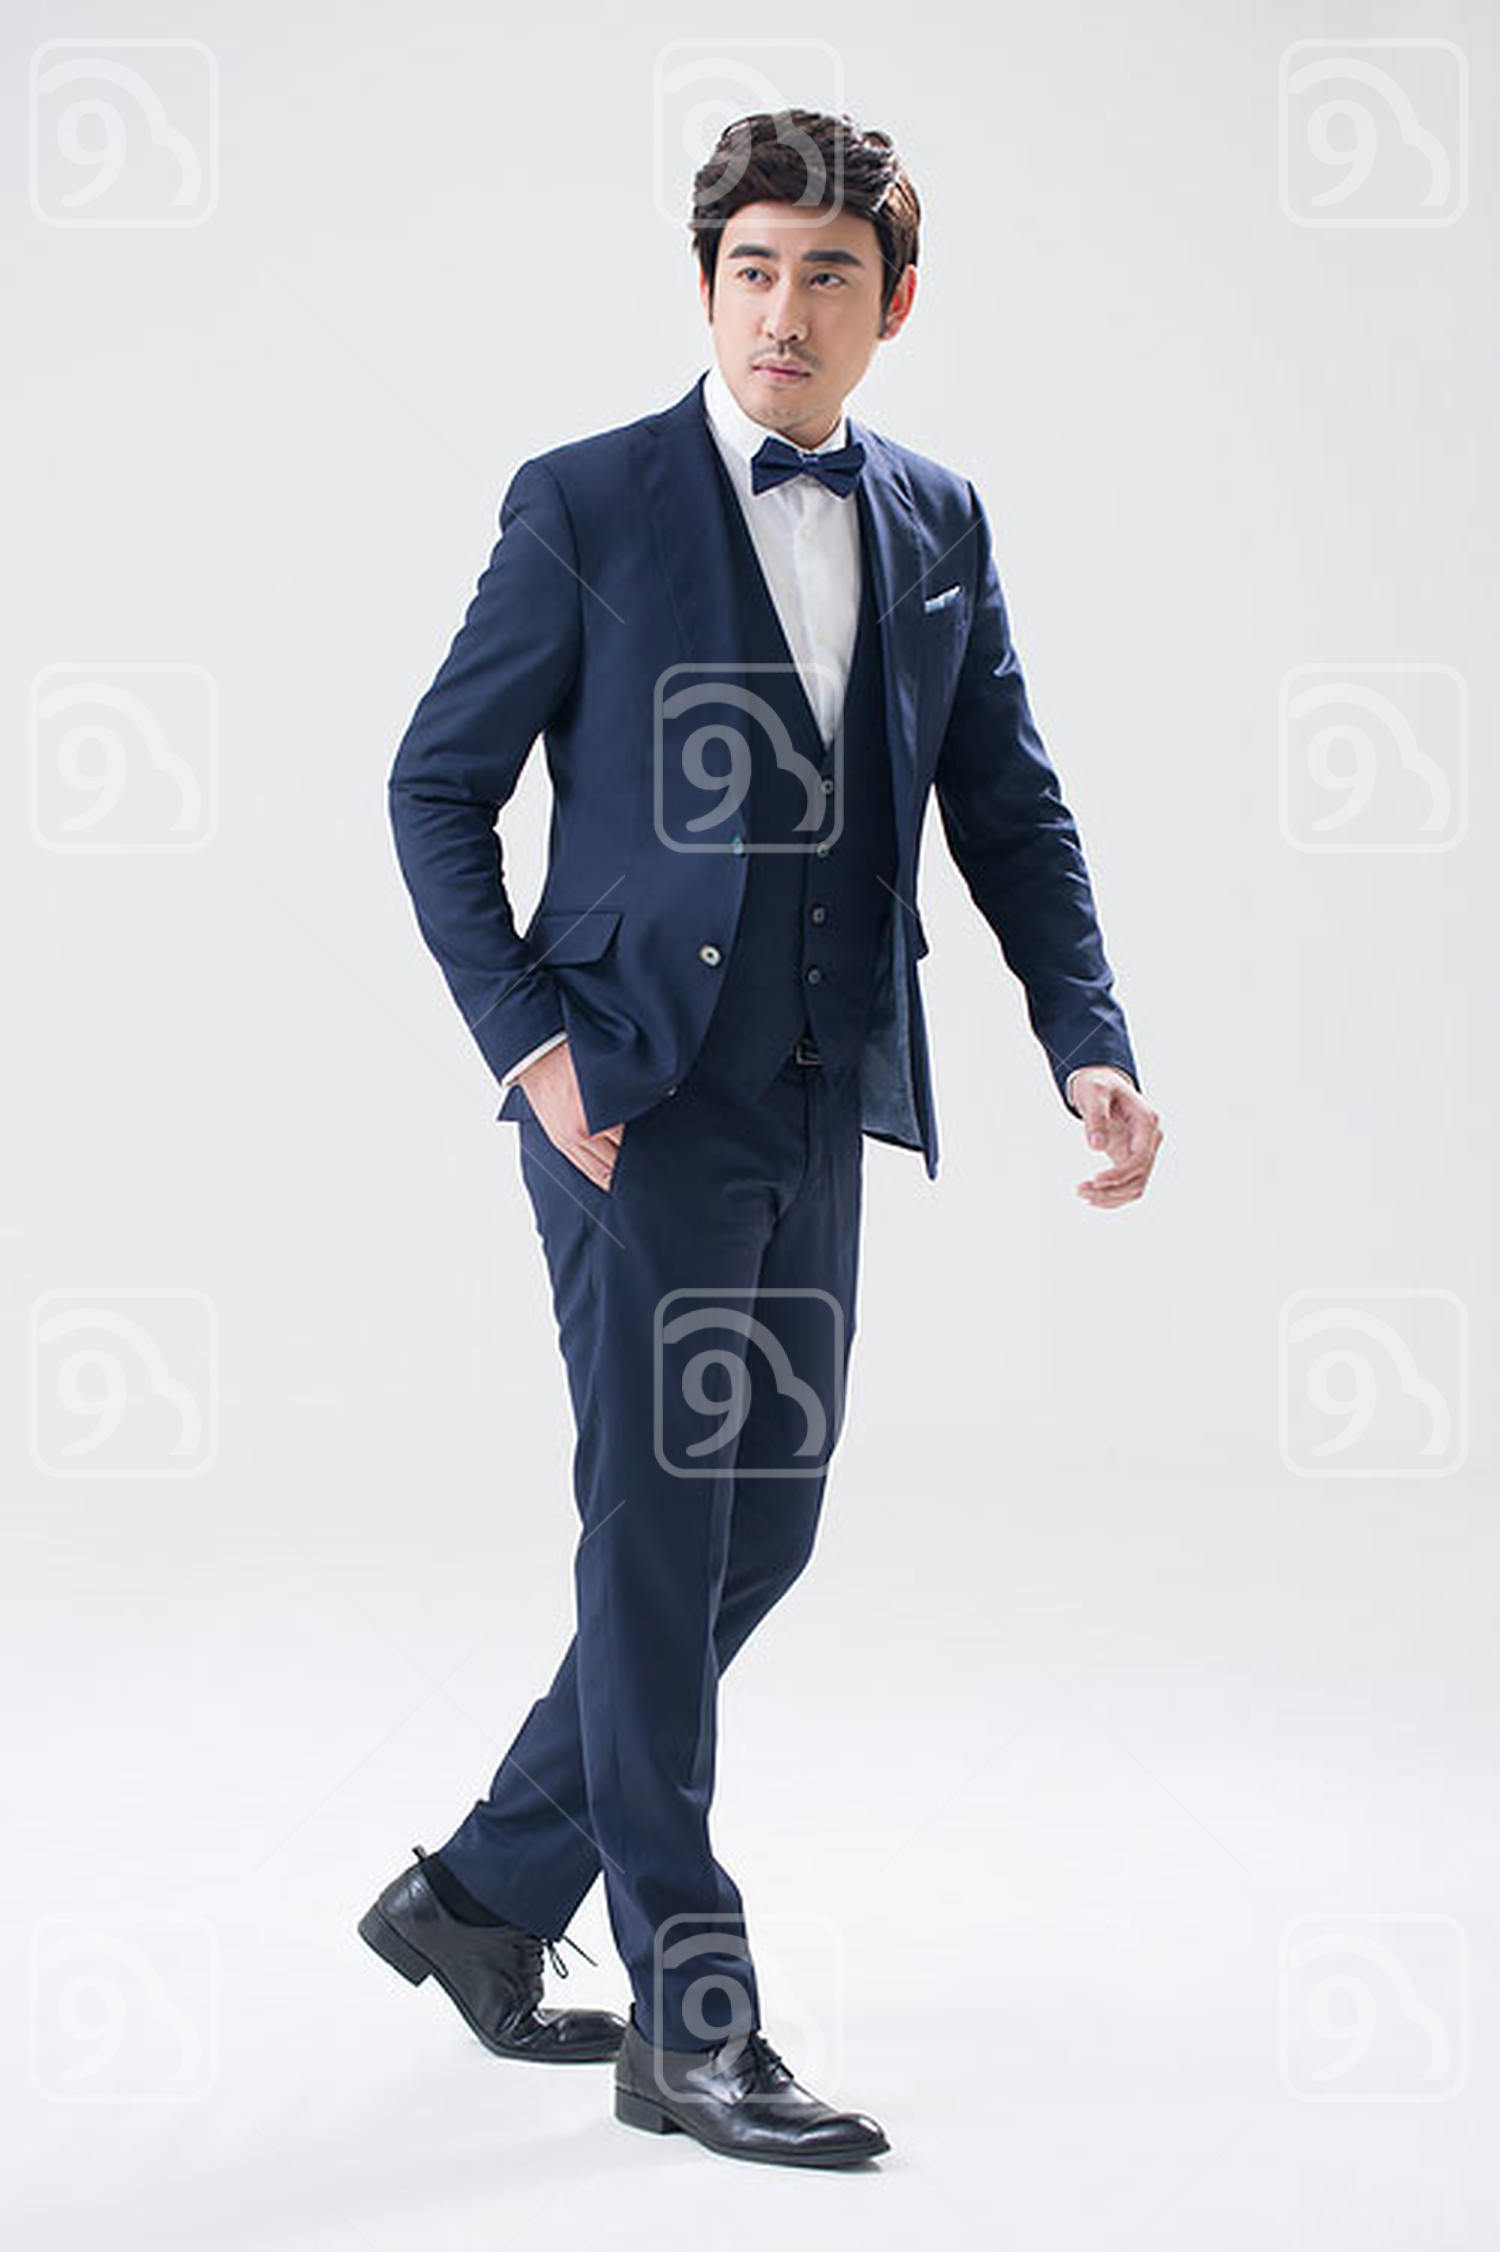 Elegant young Chinese man